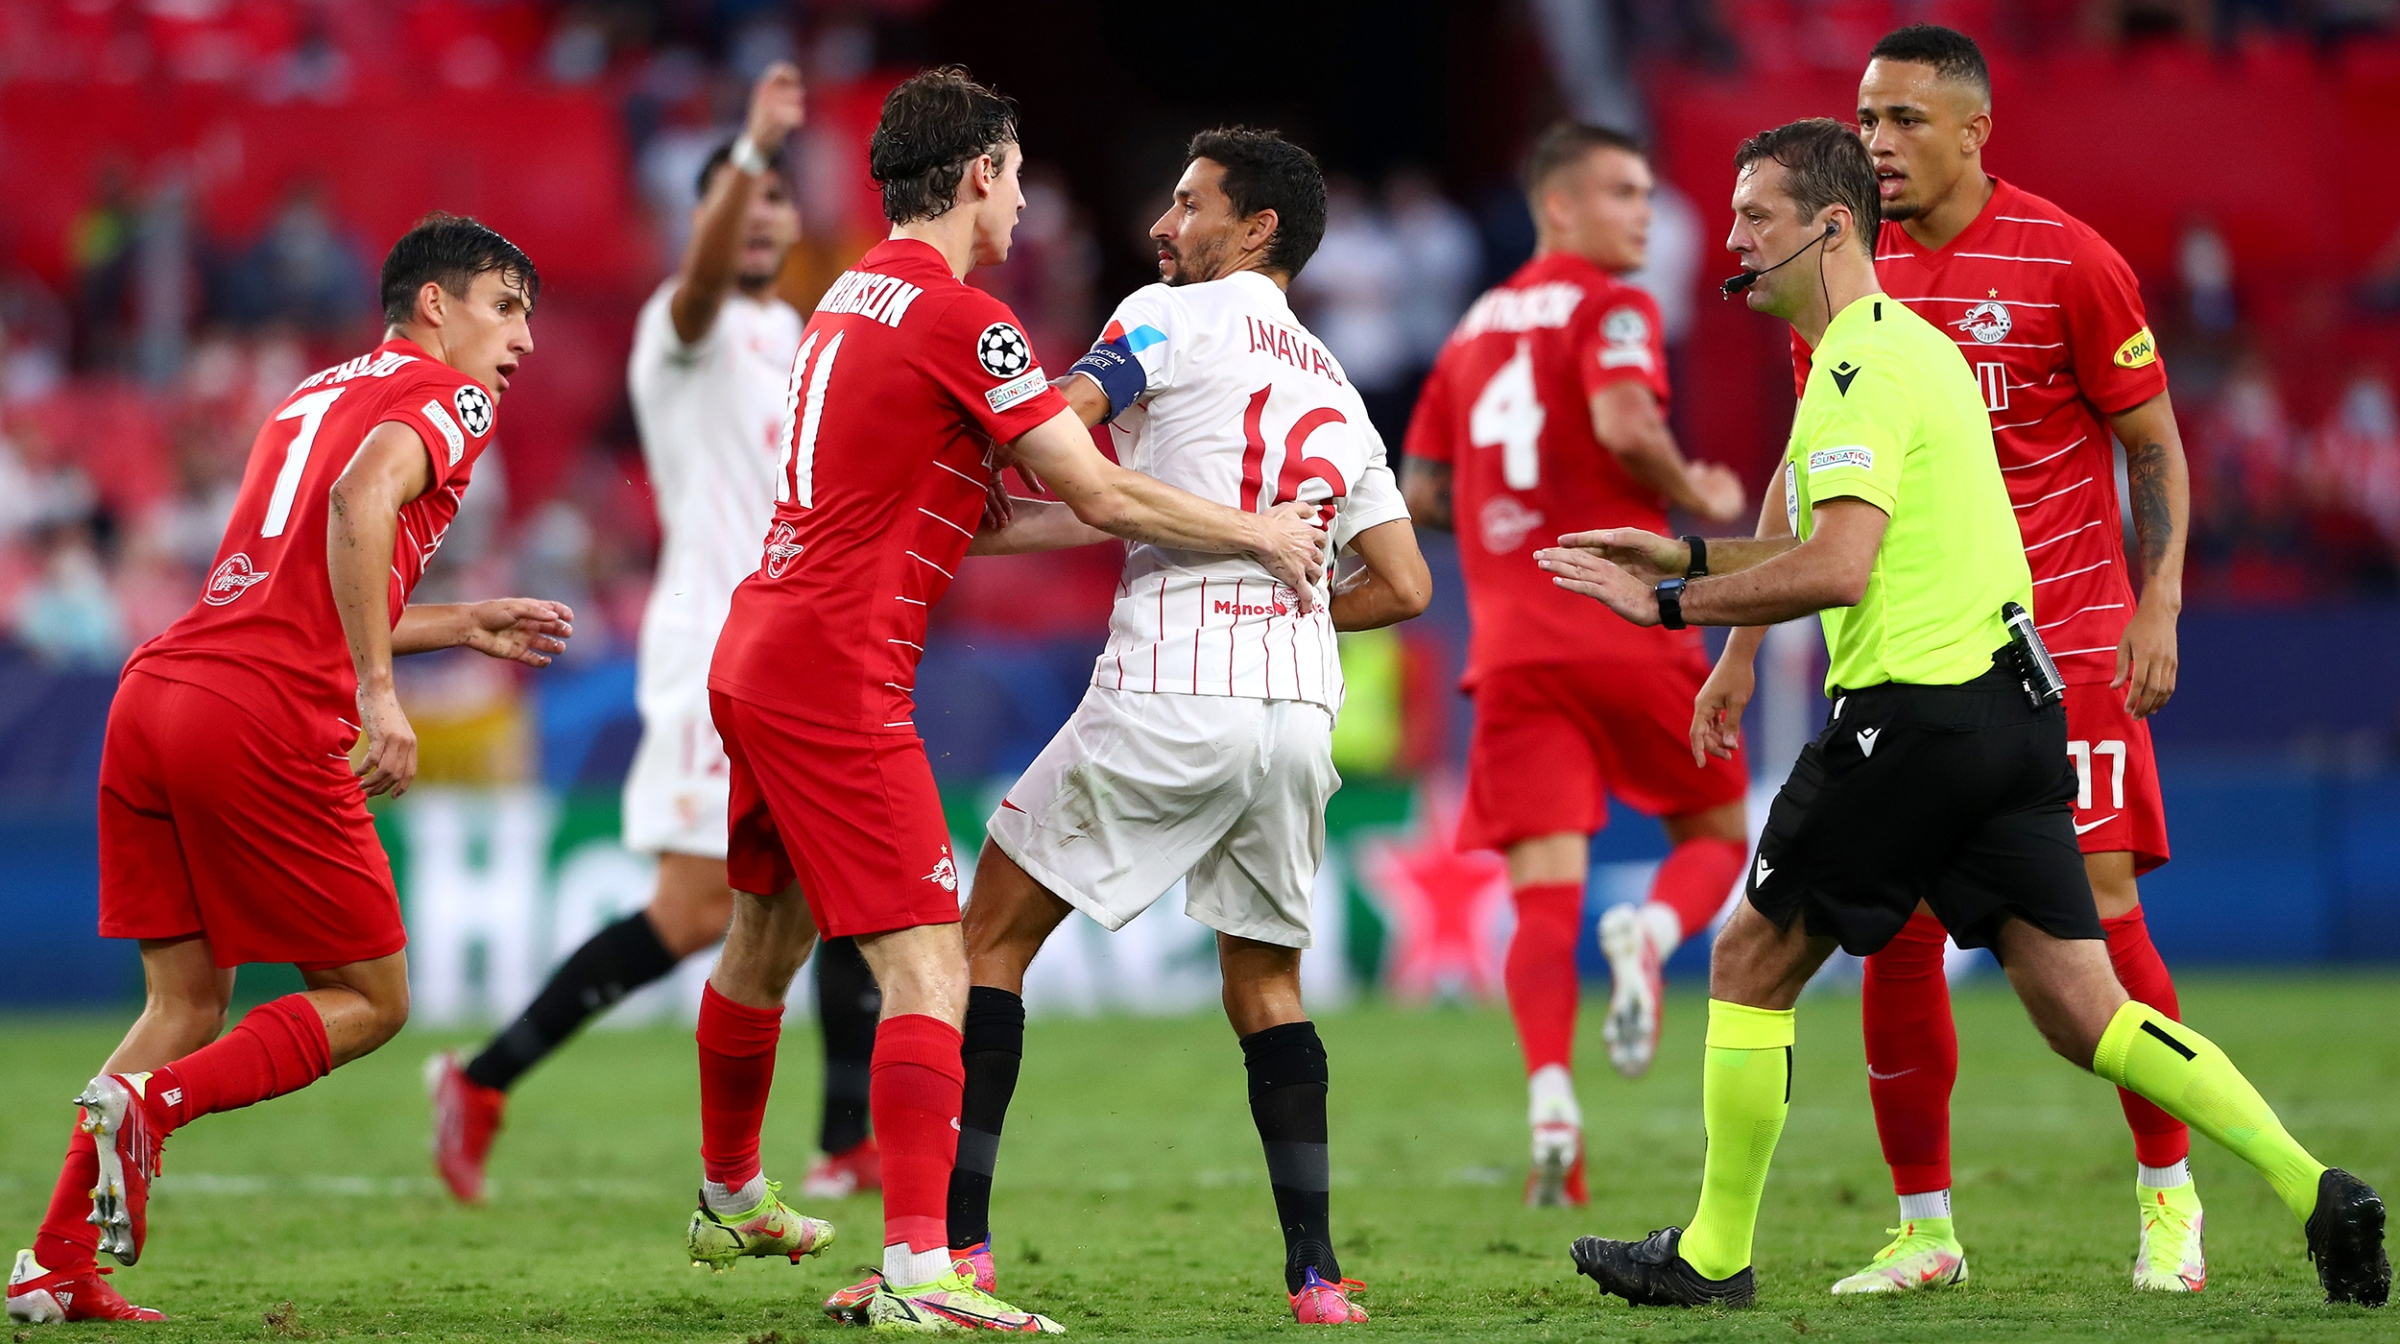 Brenden Aaronson of RB Salzburg interacts with Jesus Navas of Sevilla FC during the UEFA Champions League group G match between Sevilla FC and RB Salzburg at Estadio Ramon Sanchez Pizjuan on September 14, 2021 in Seville, Spain.